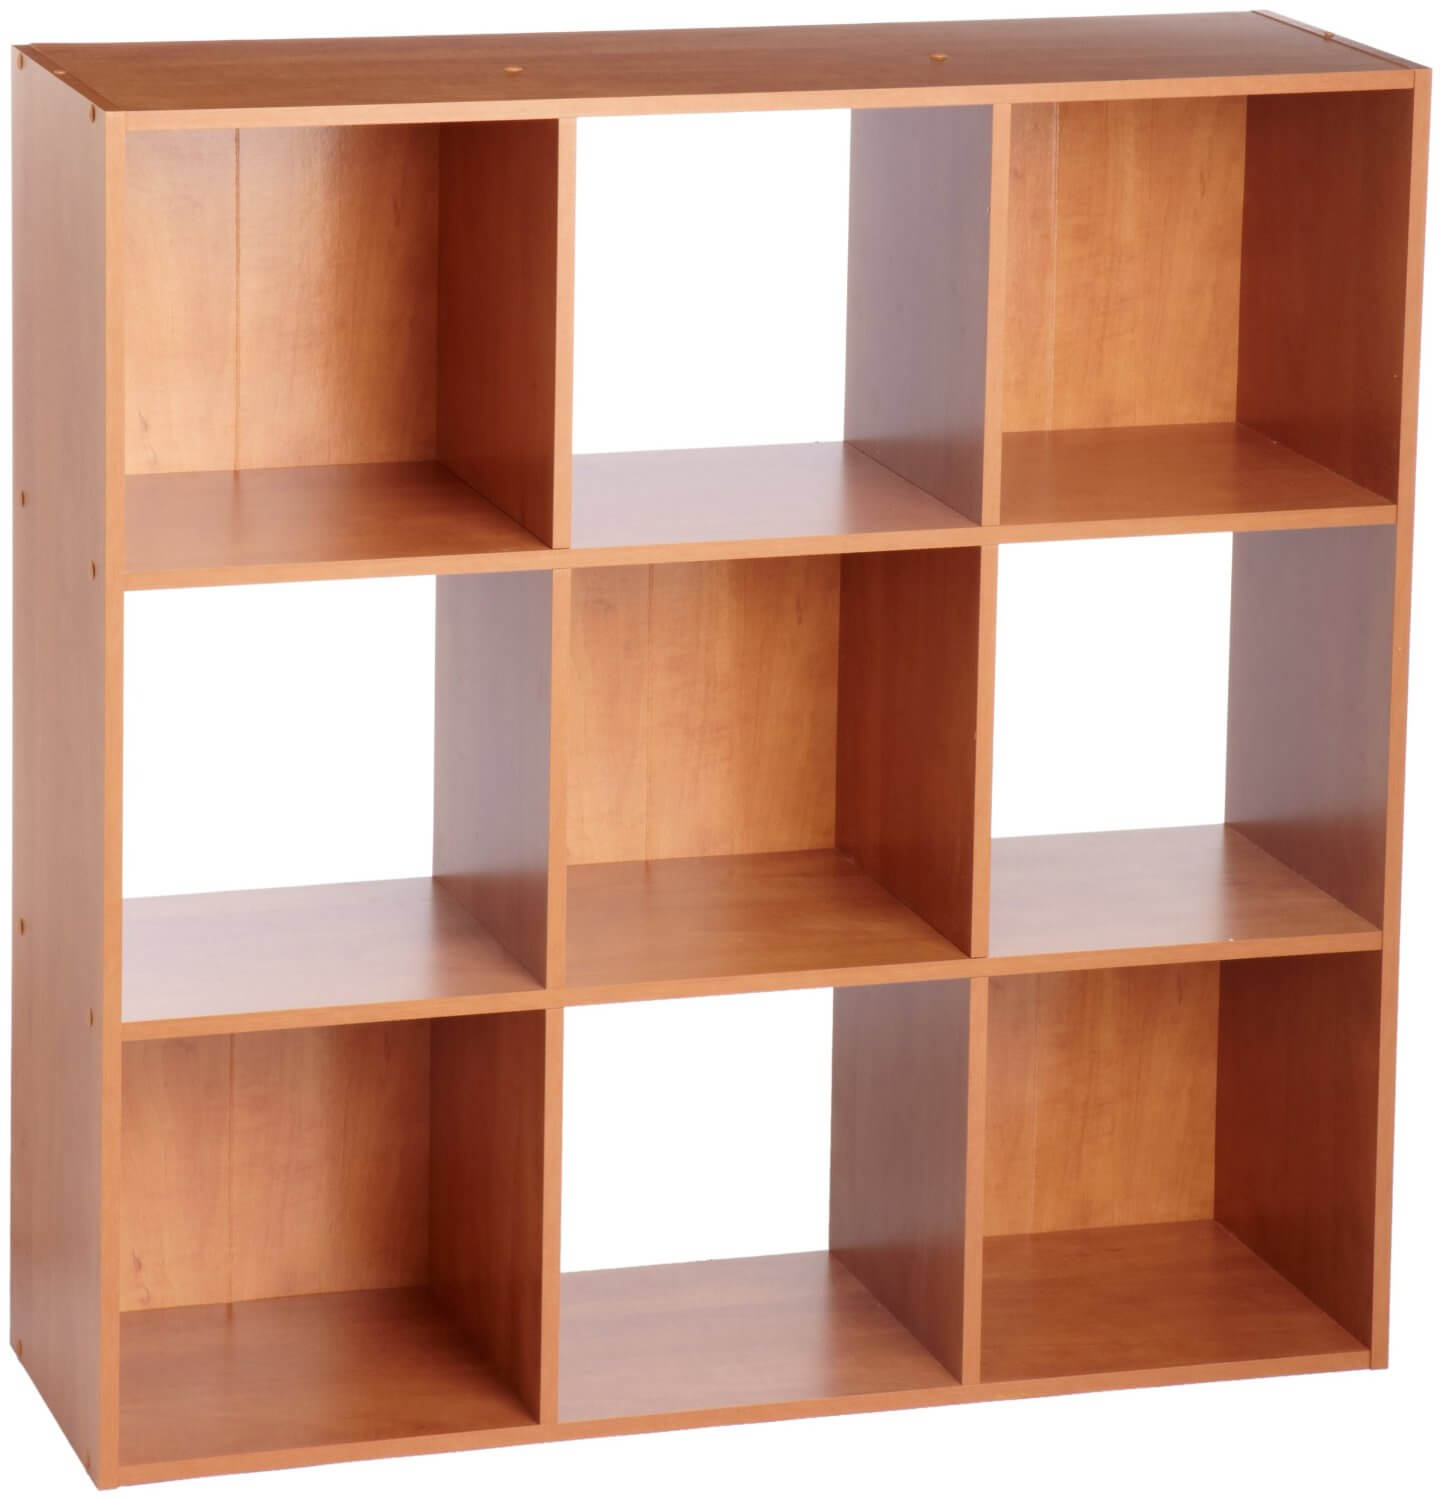 I love the color on this checkered 9 cube bookshelf. The checkered pattern is achieved with use of shelving backs on alternate cube sections. Otherwise, it's a traditional shelf design.